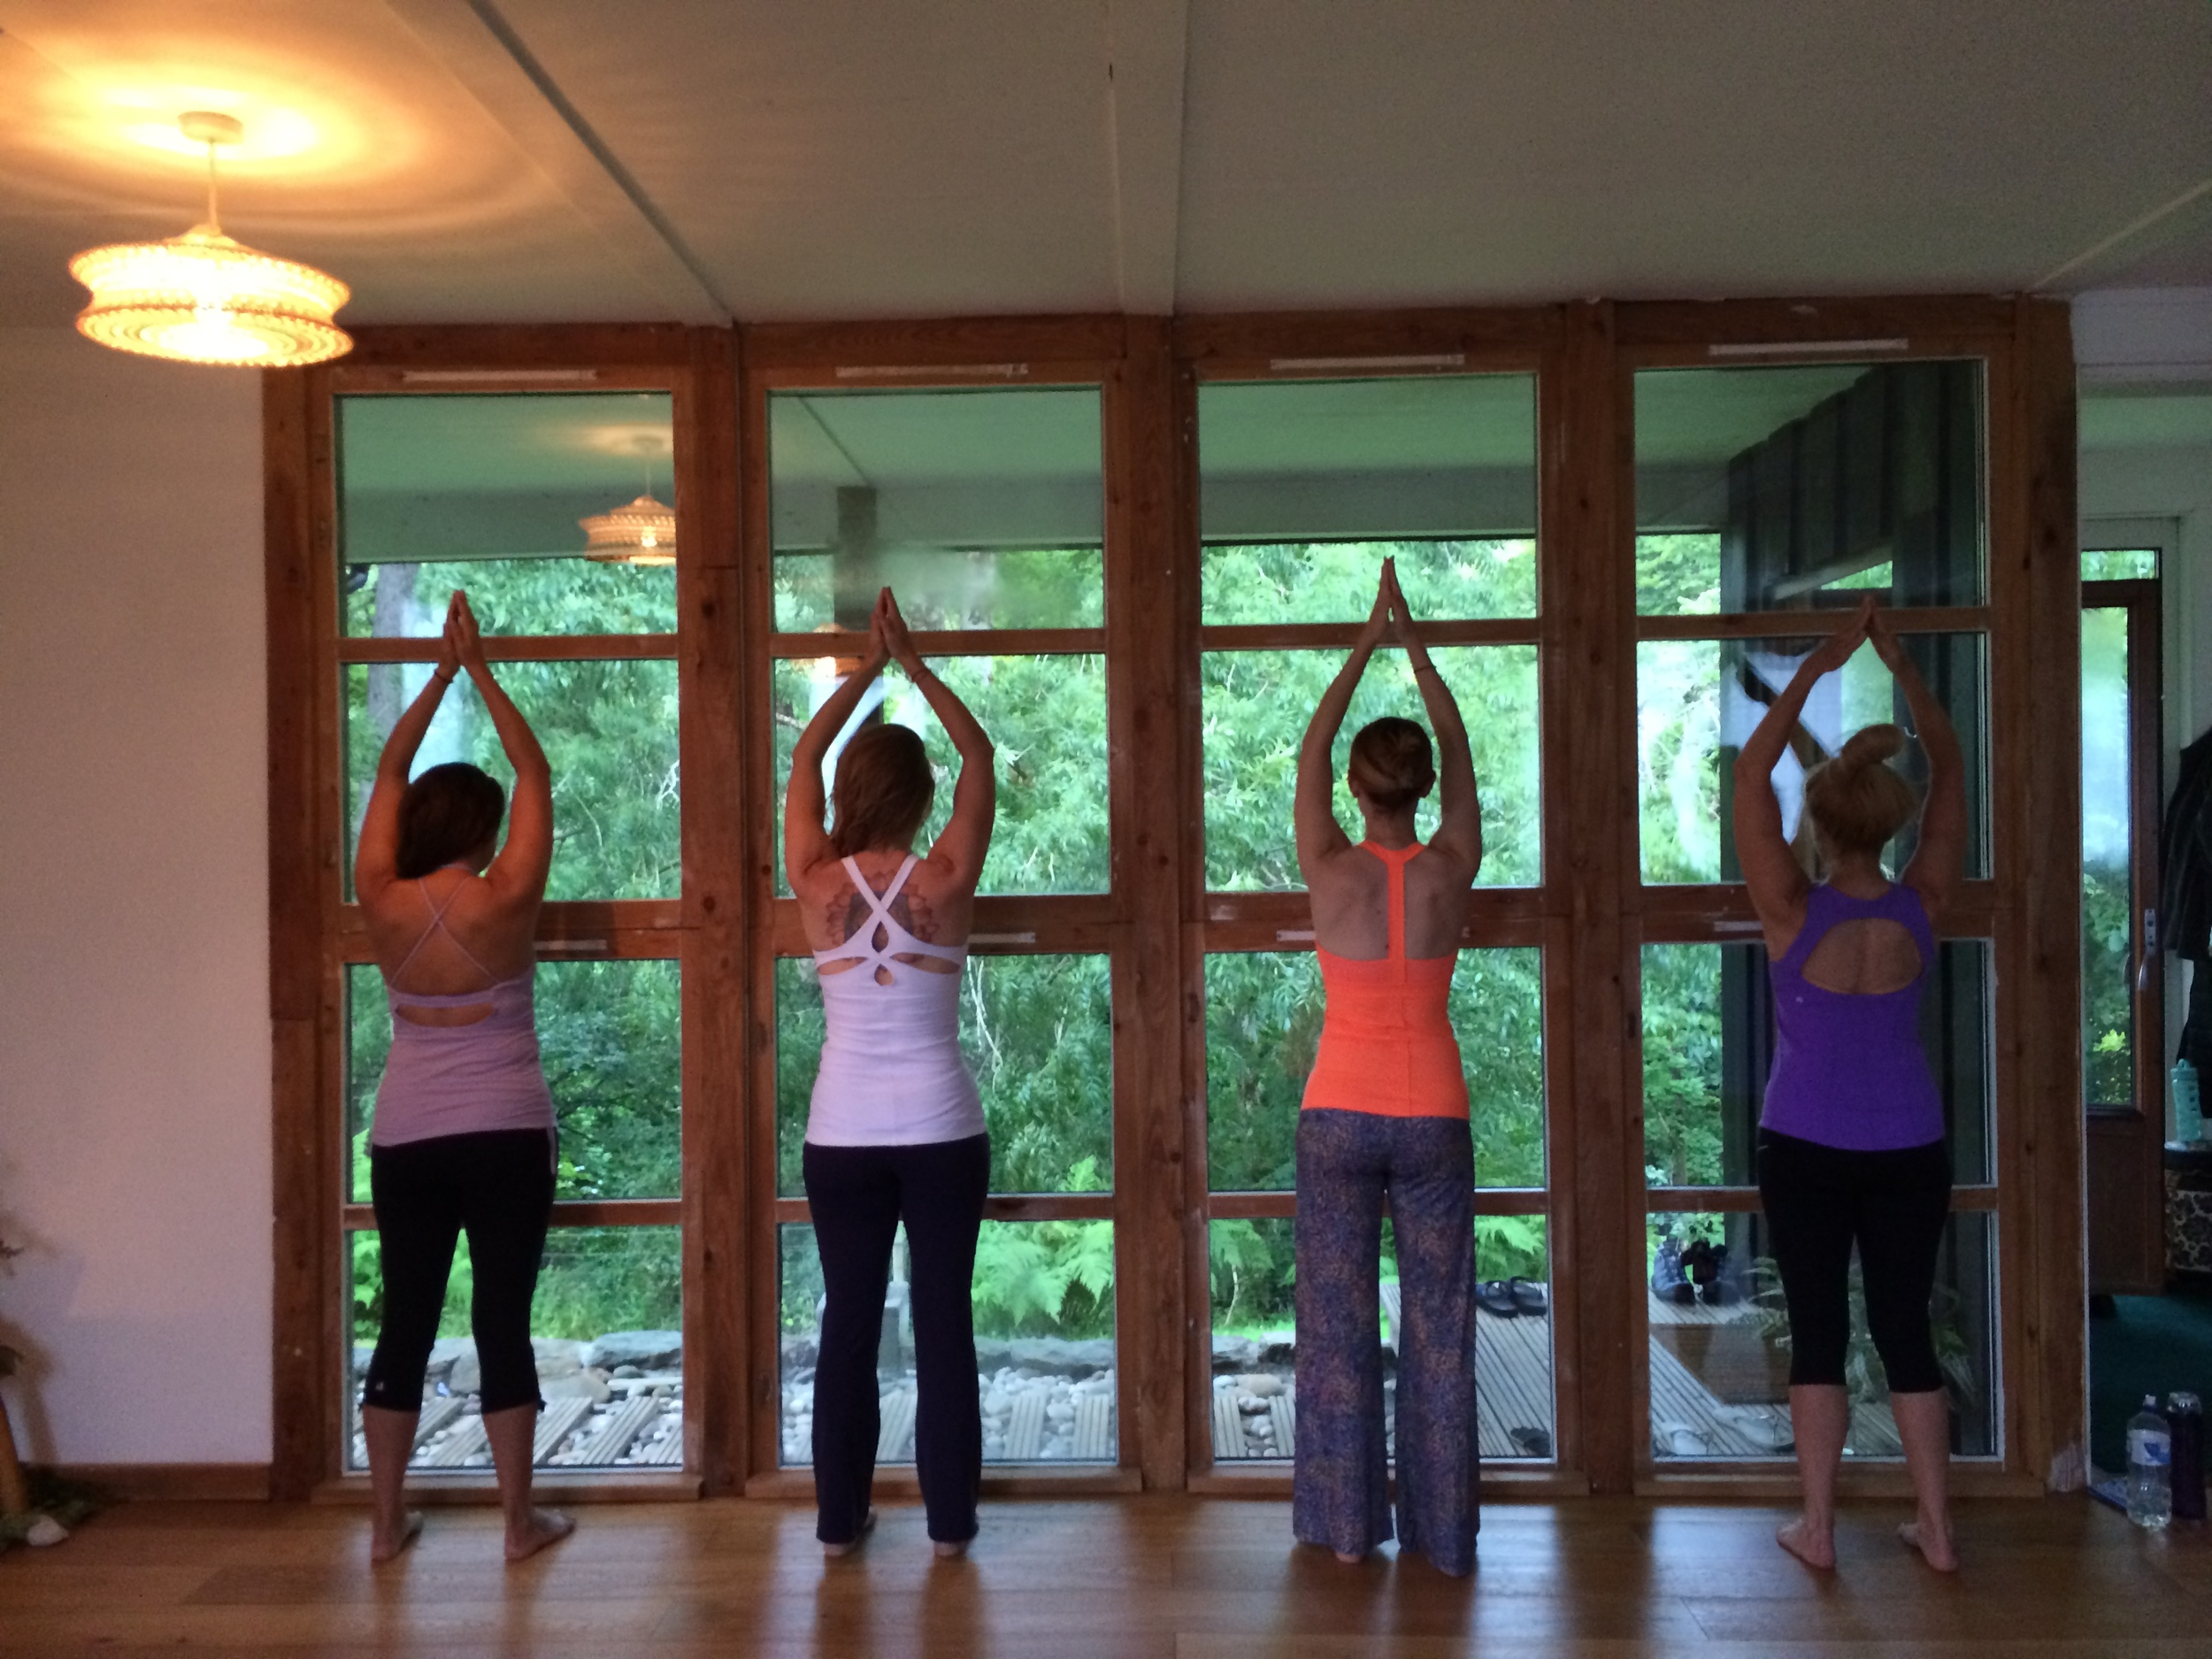 Practicing yoga daily in the forest glen